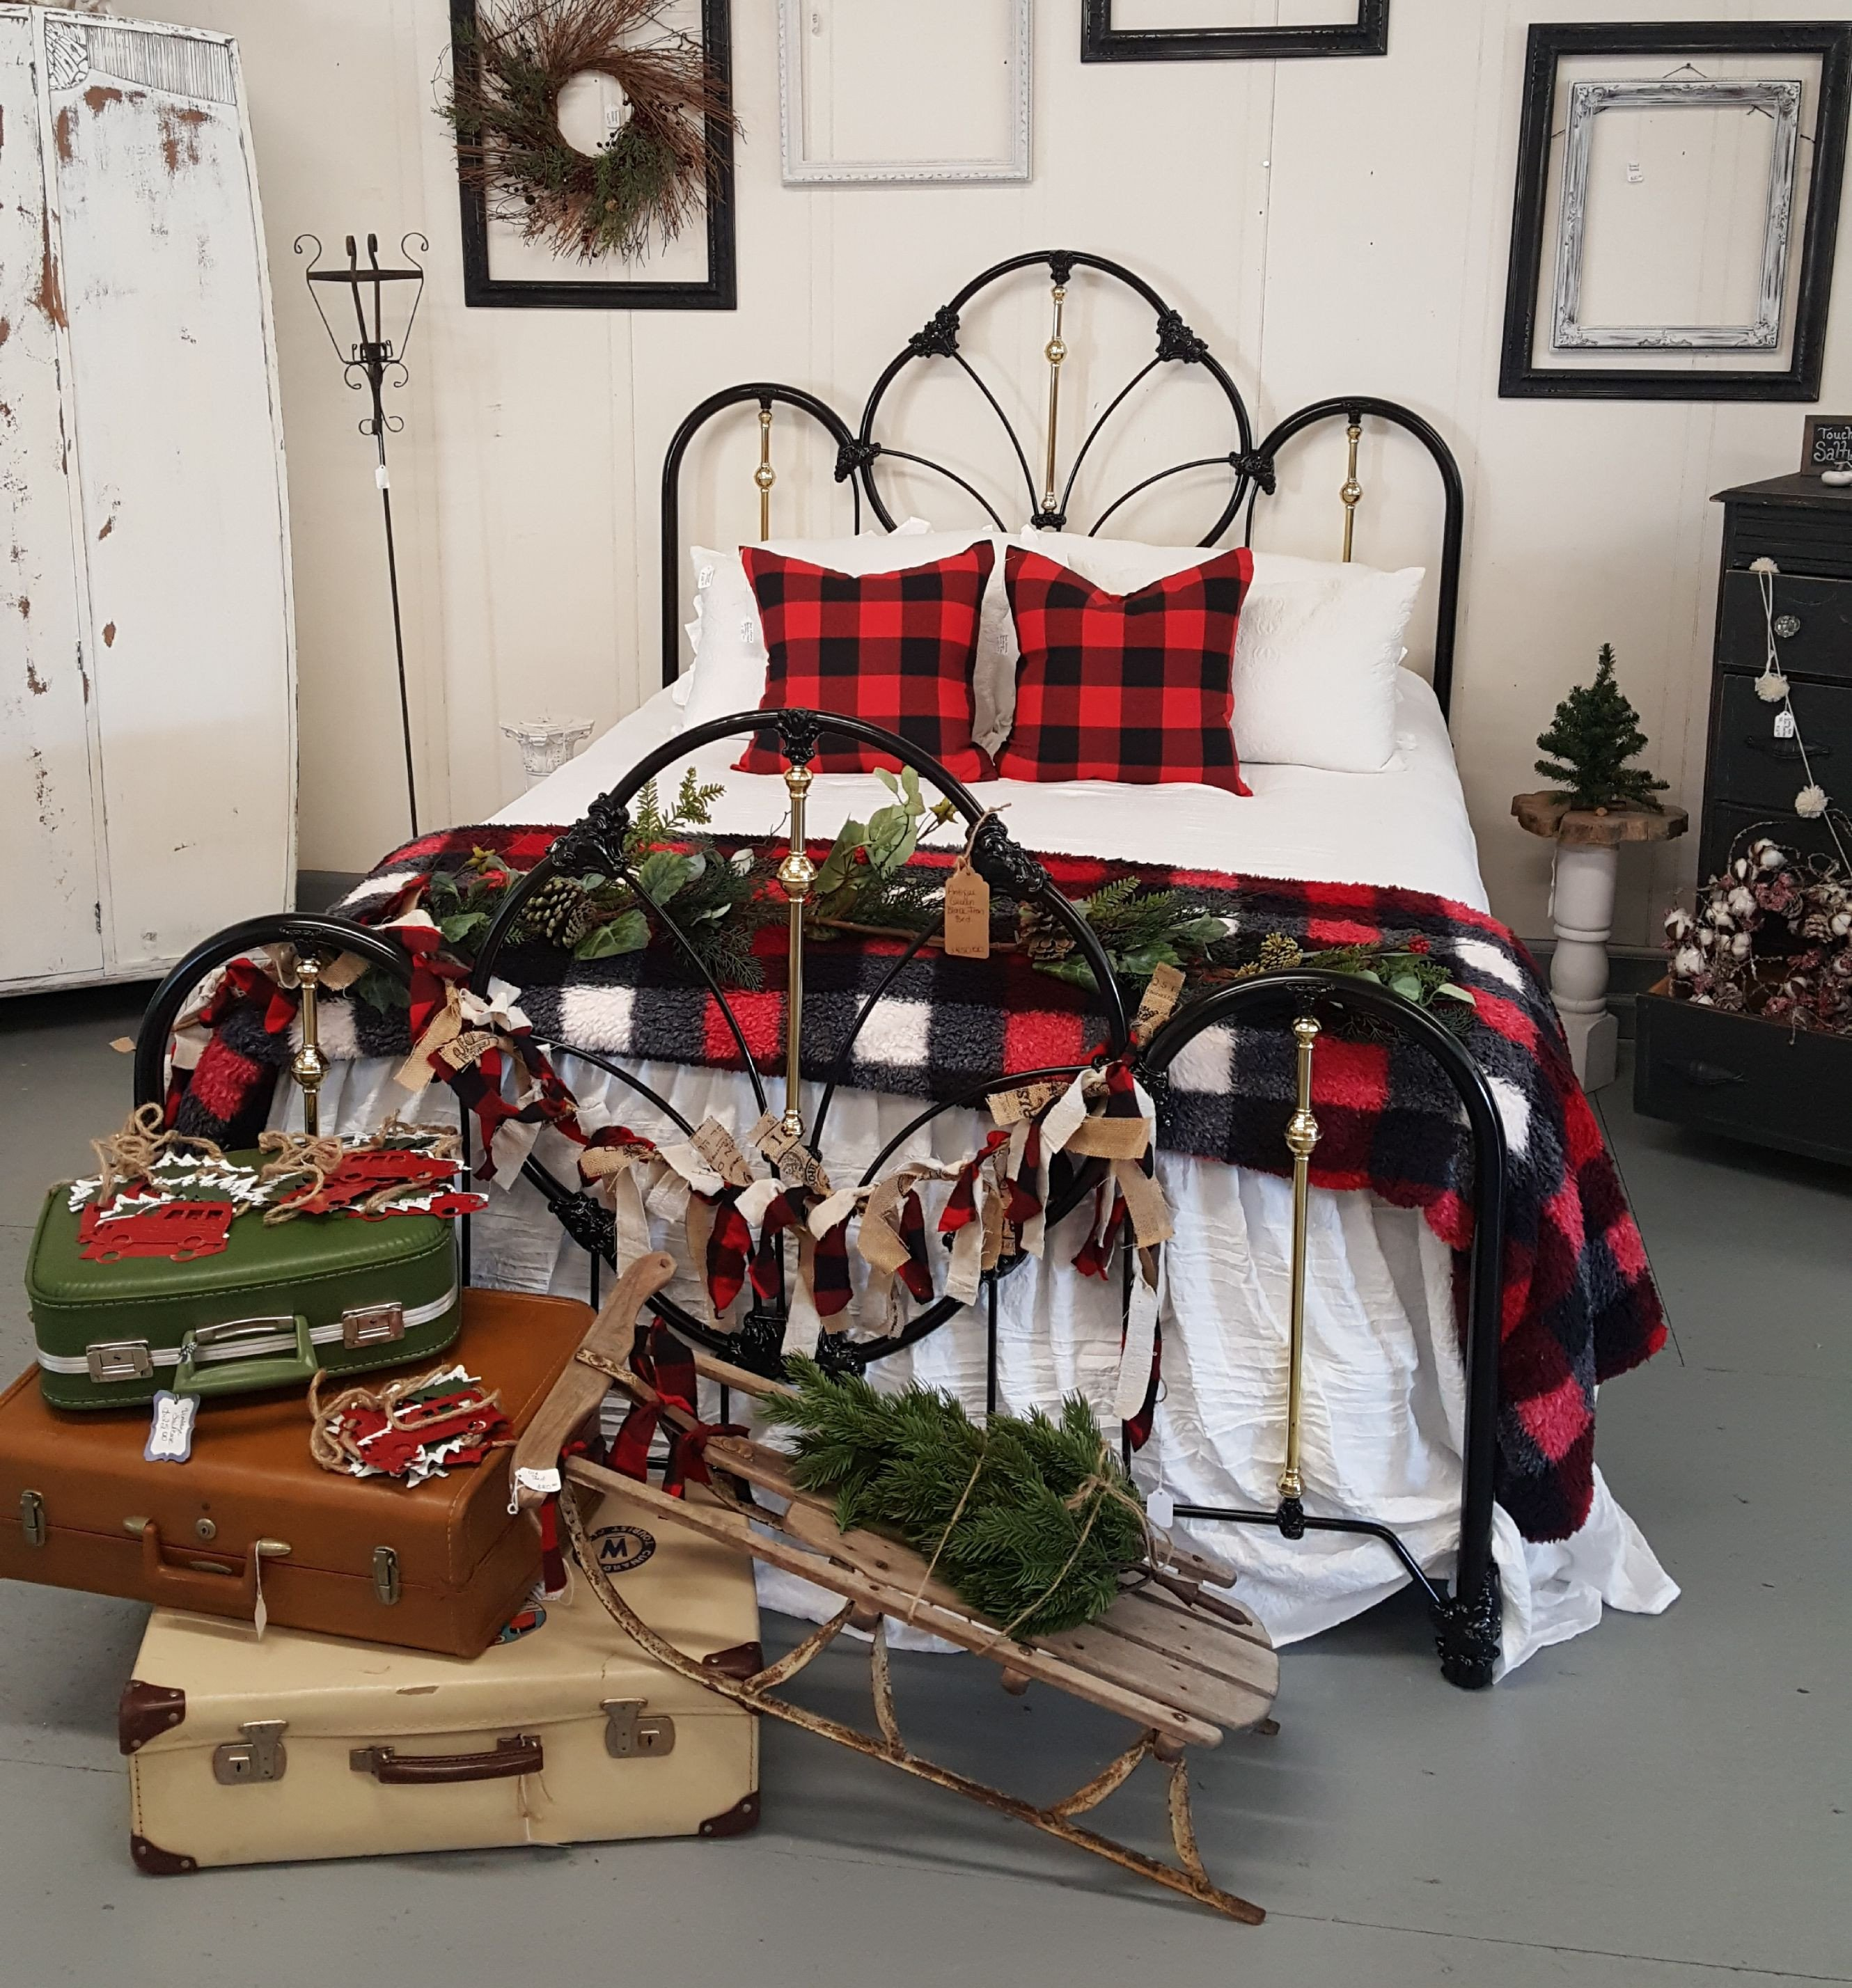 Red and Black Bedroom Set Awesome This Christmas Decorated Red and Black Buffalo Check Iron